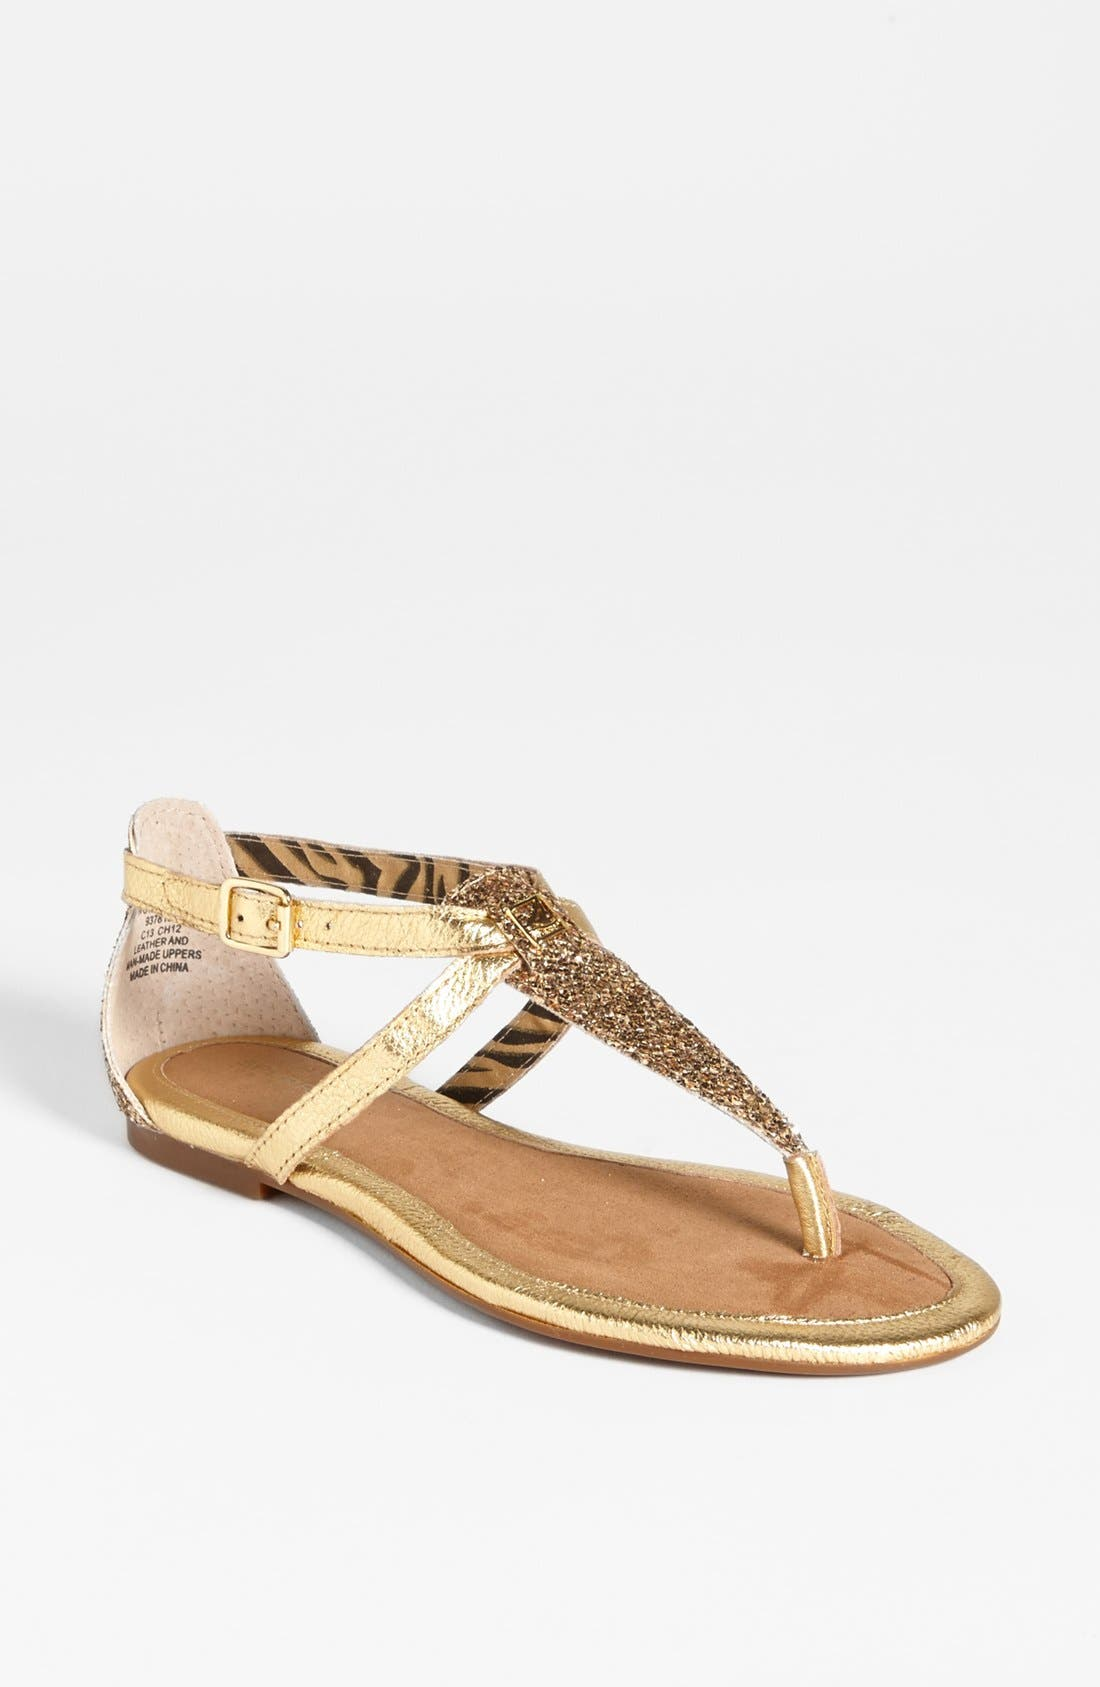 Alternate Image 1 Selected - Sperry Top-Sider® 'Summerlin' Sandal